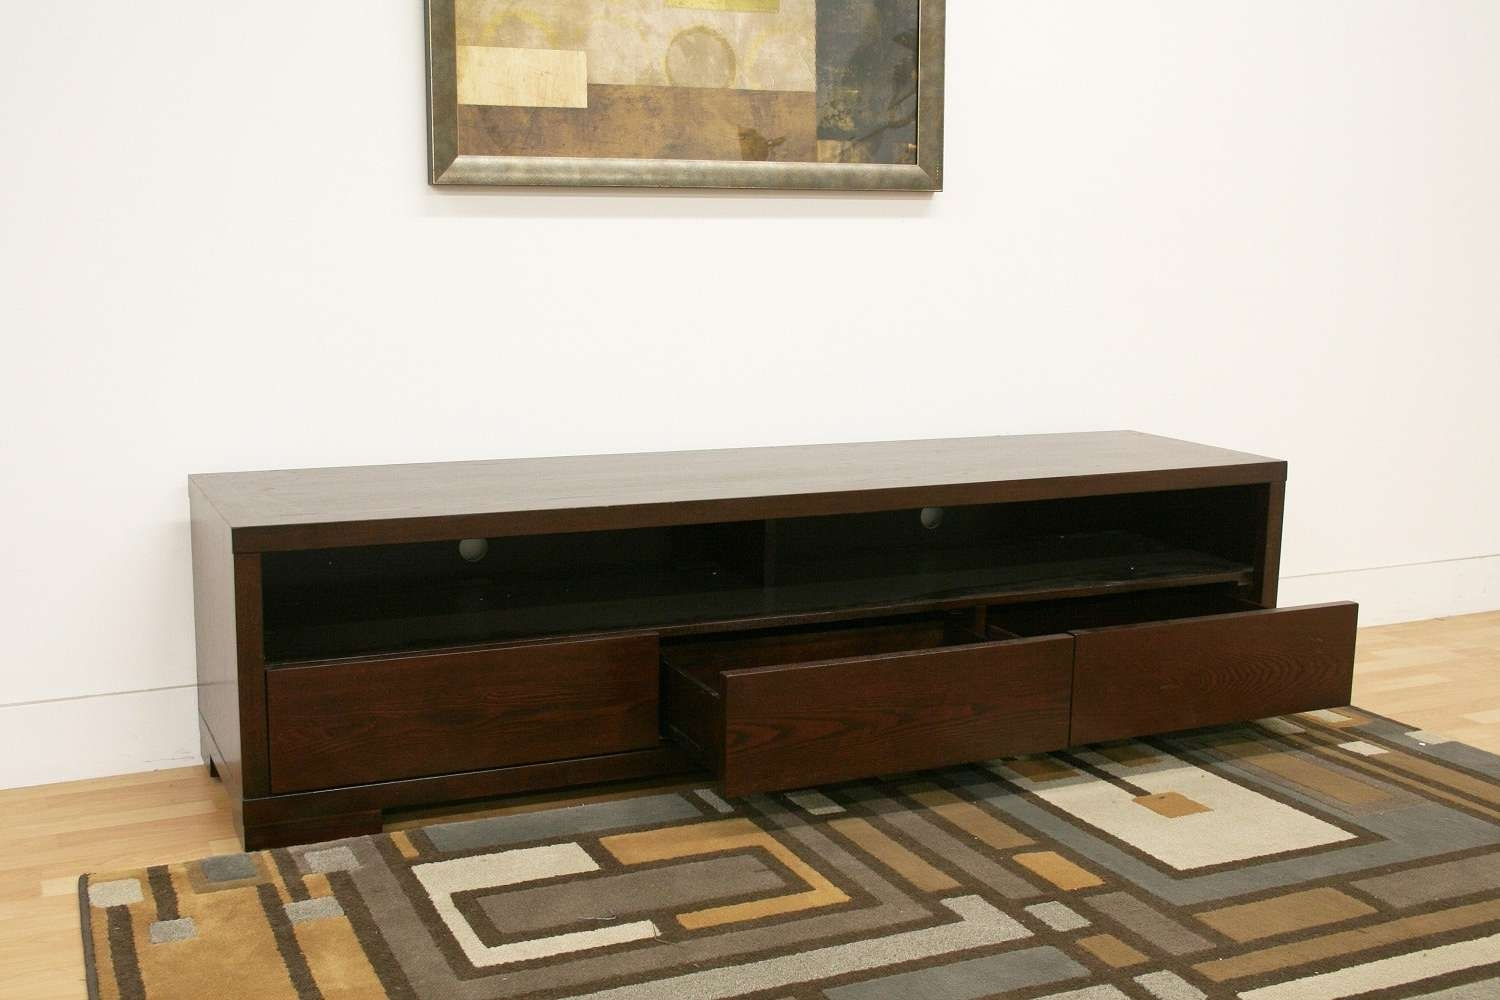 Console Tables : Simple Old Low Profile Media Console With Drawer Pertaining To Modern Low Profile Tv Stands (View 14 of 15)